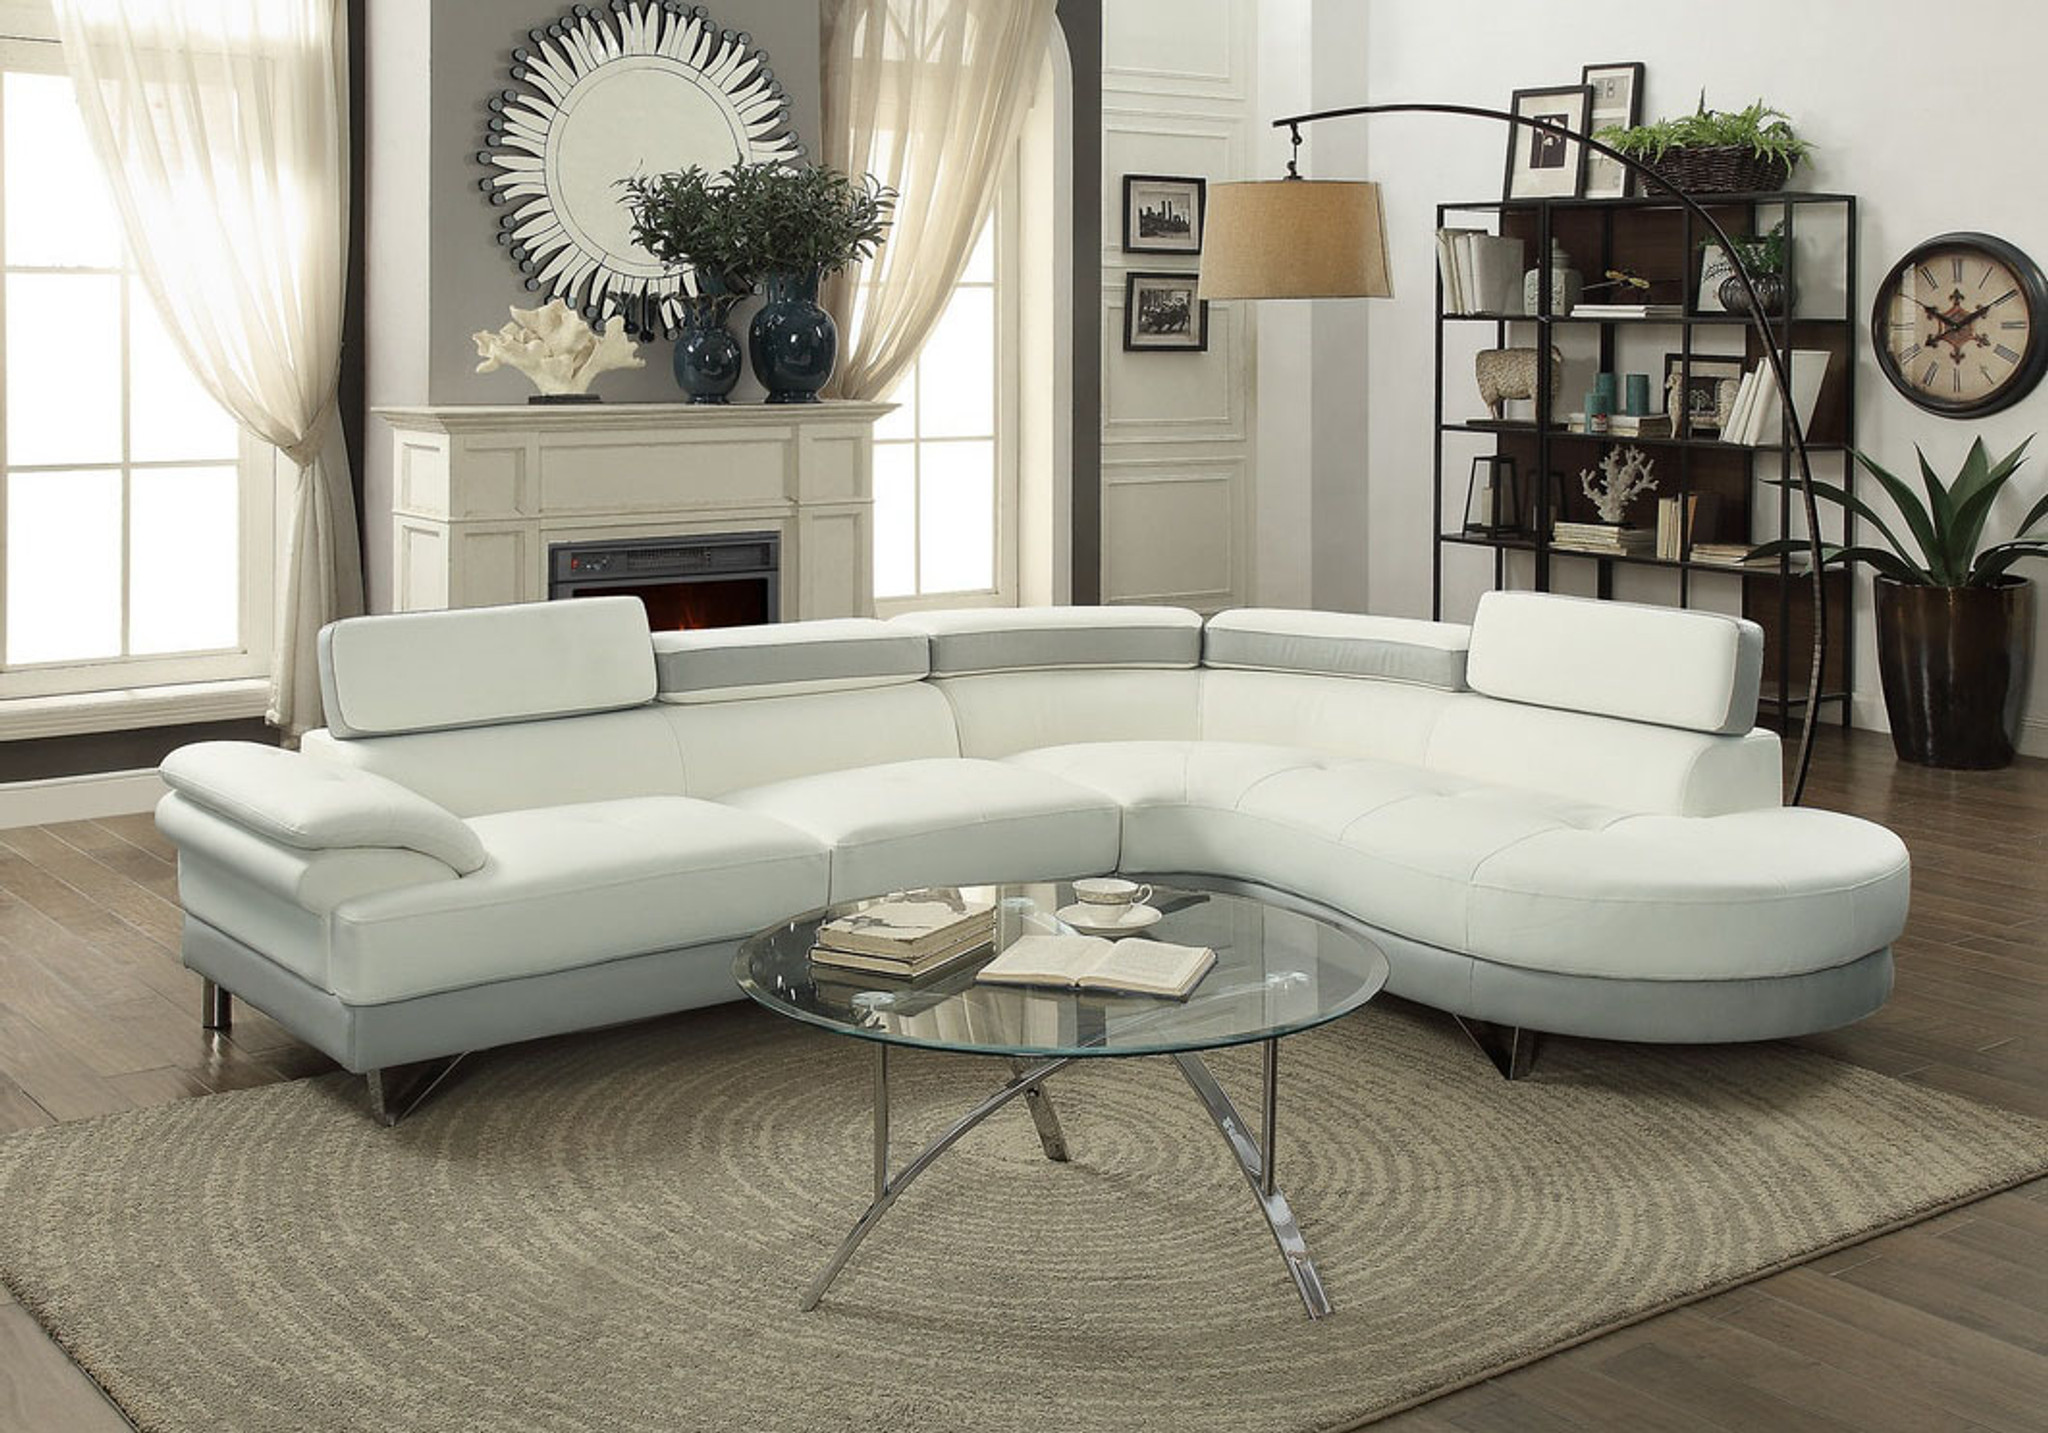 2PC SECTIONAL WITH FLIP UP HEADREST IN WHITE/LIGHT GRAY